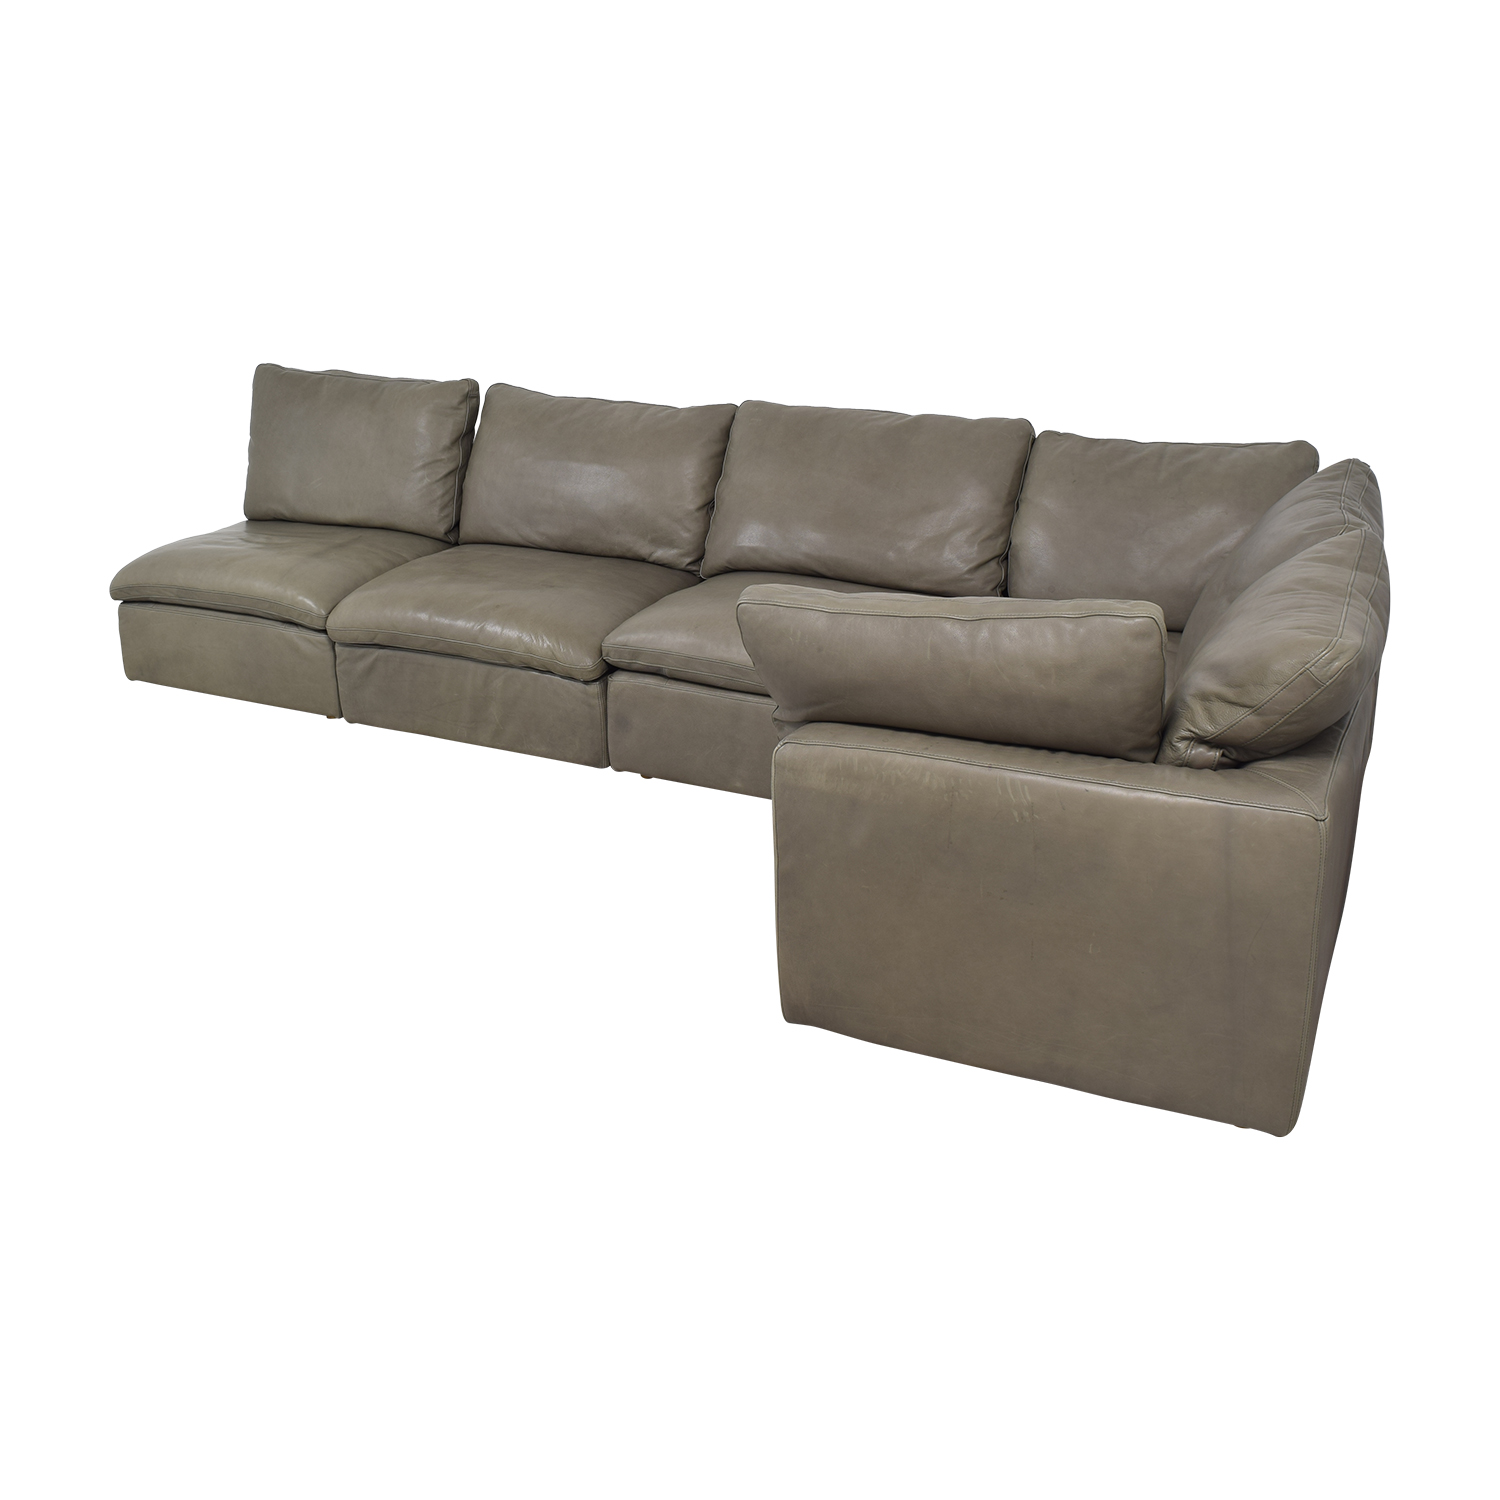 Restoration Hardware Restoration Hardware Cloud Modular Sectional Sofa coupon